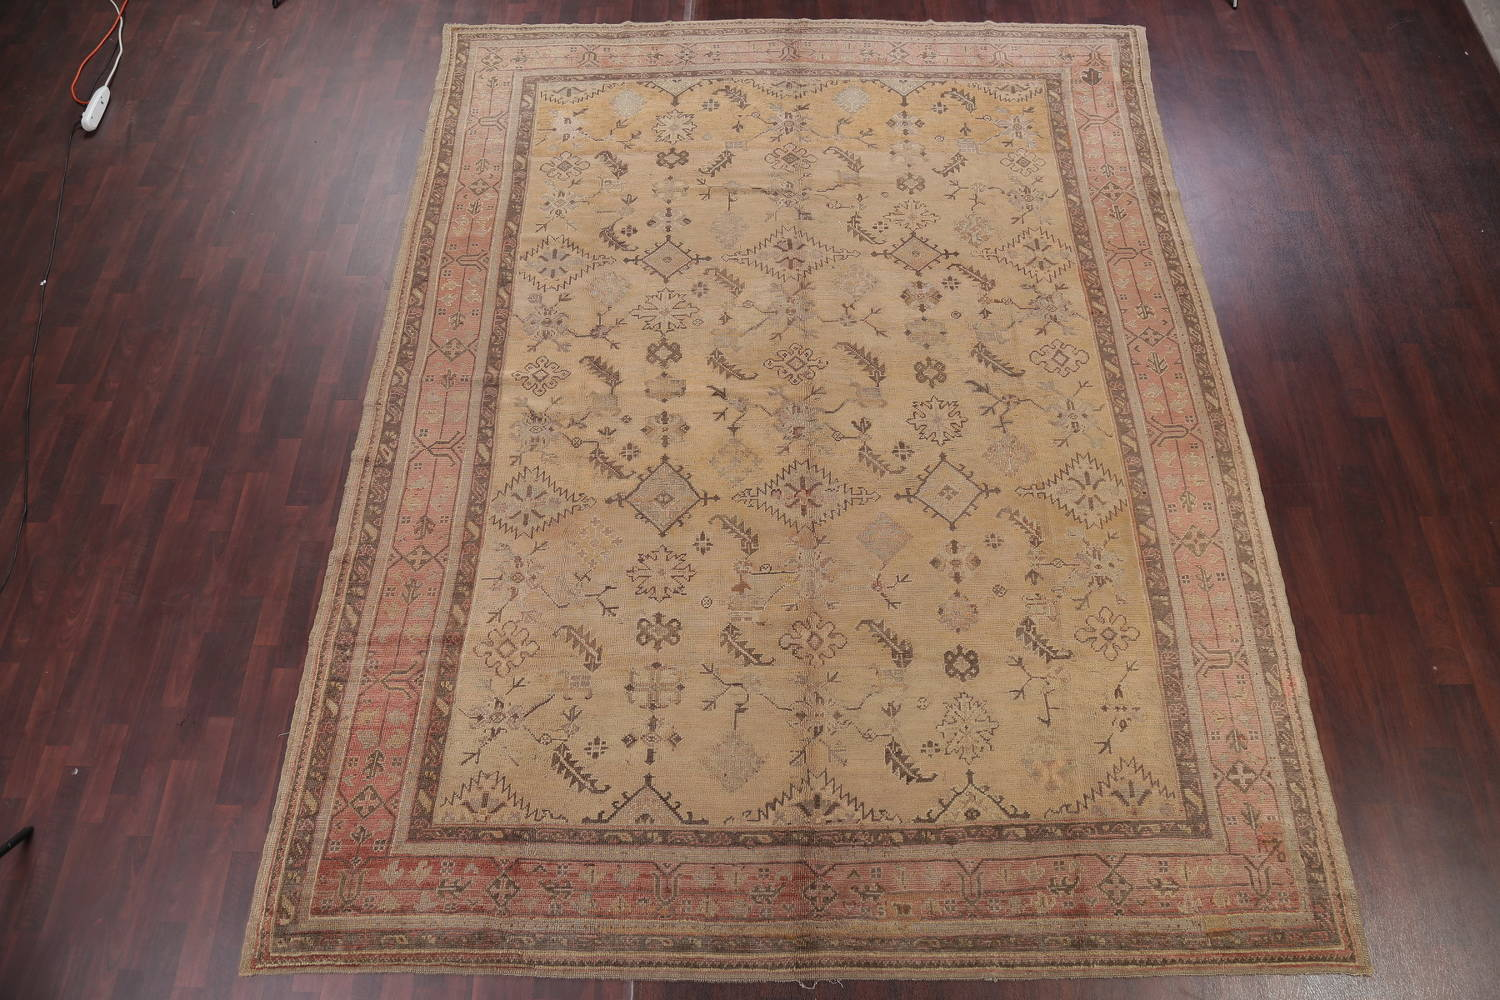 Pre-1900 Antique All-Over Geometric Muted Color Oushak Turkish Area Rug 10x13 image 2